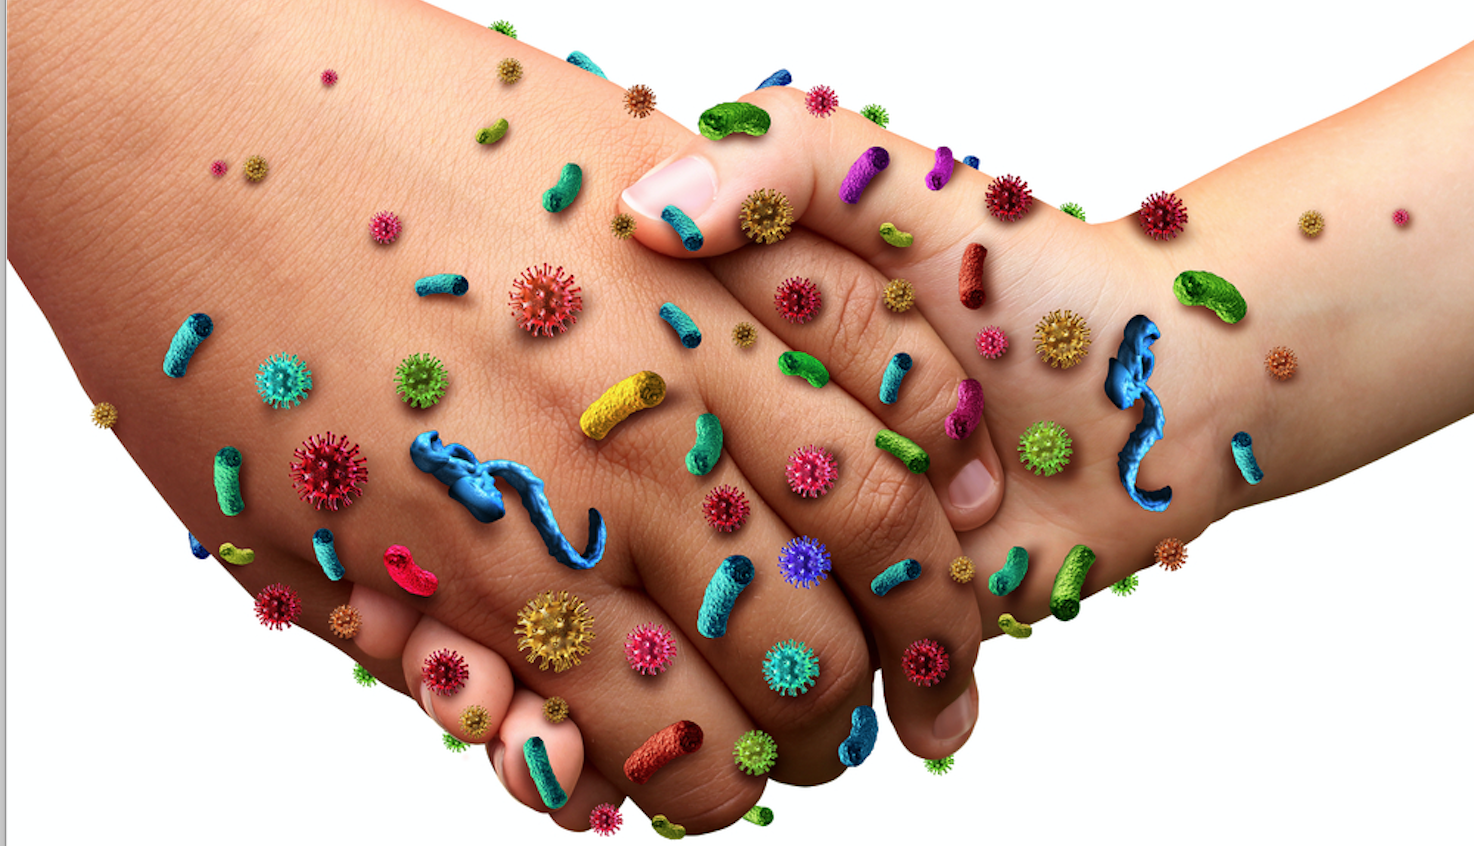 Microbiome-based therapy for eczema: On the horizon?